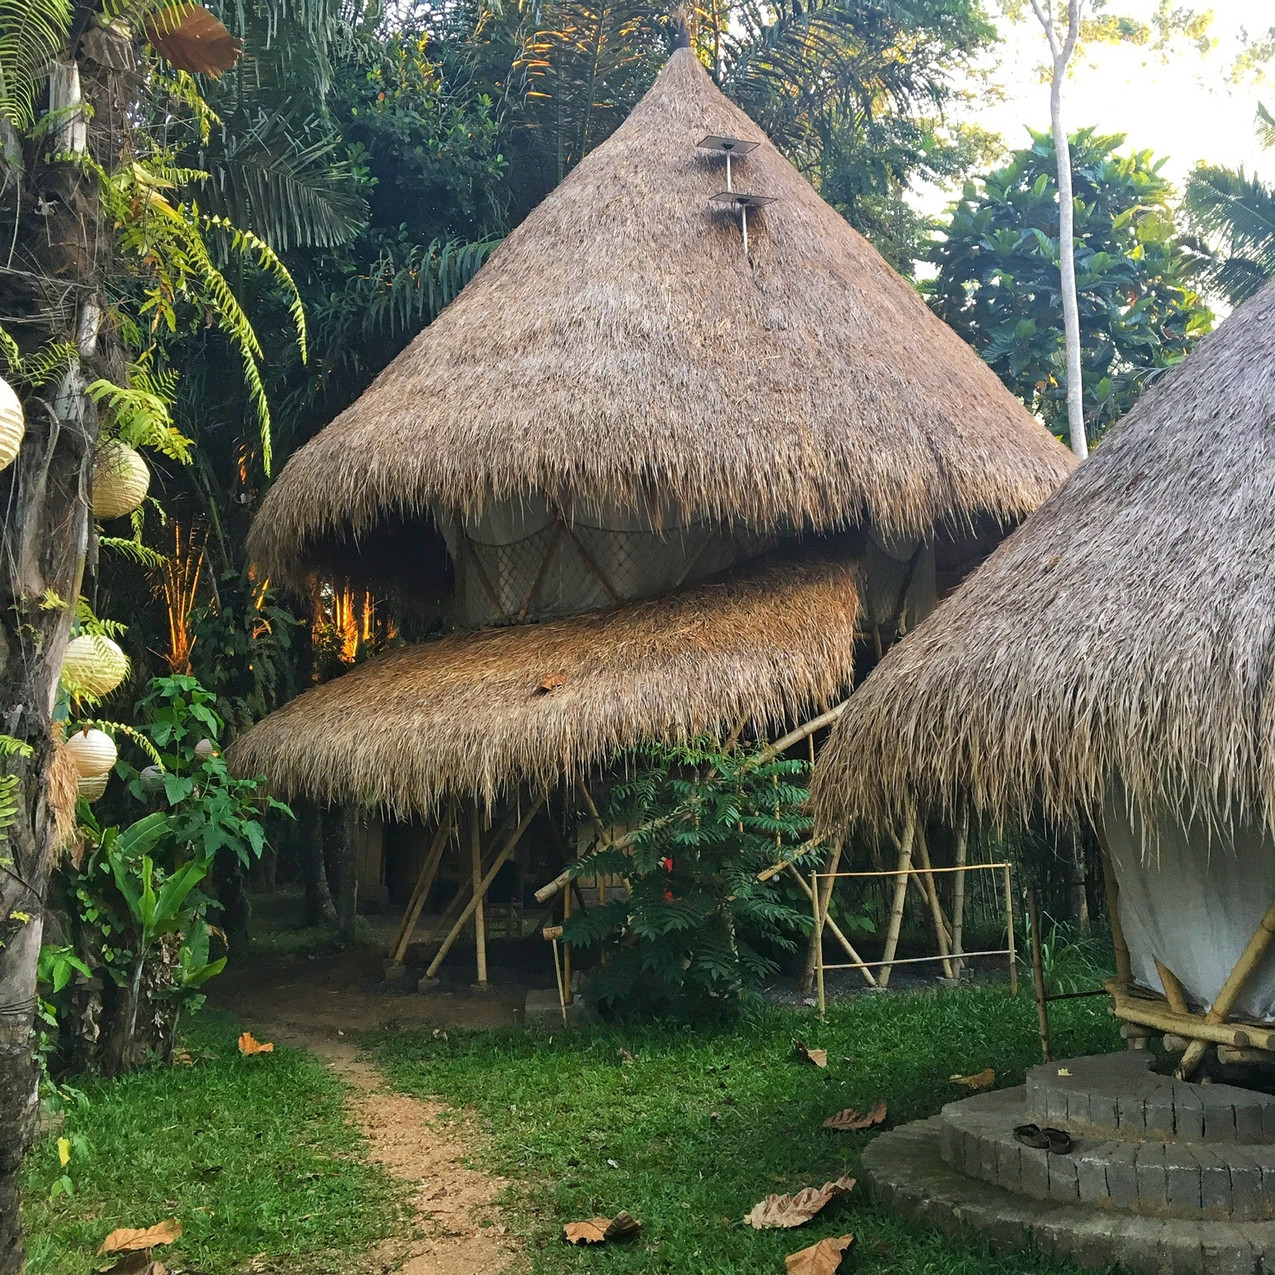 Our housing at the Kul Kul Farm: Traditional bamboo buildings with bale roofs and a little solar pannel for the lights and fan.